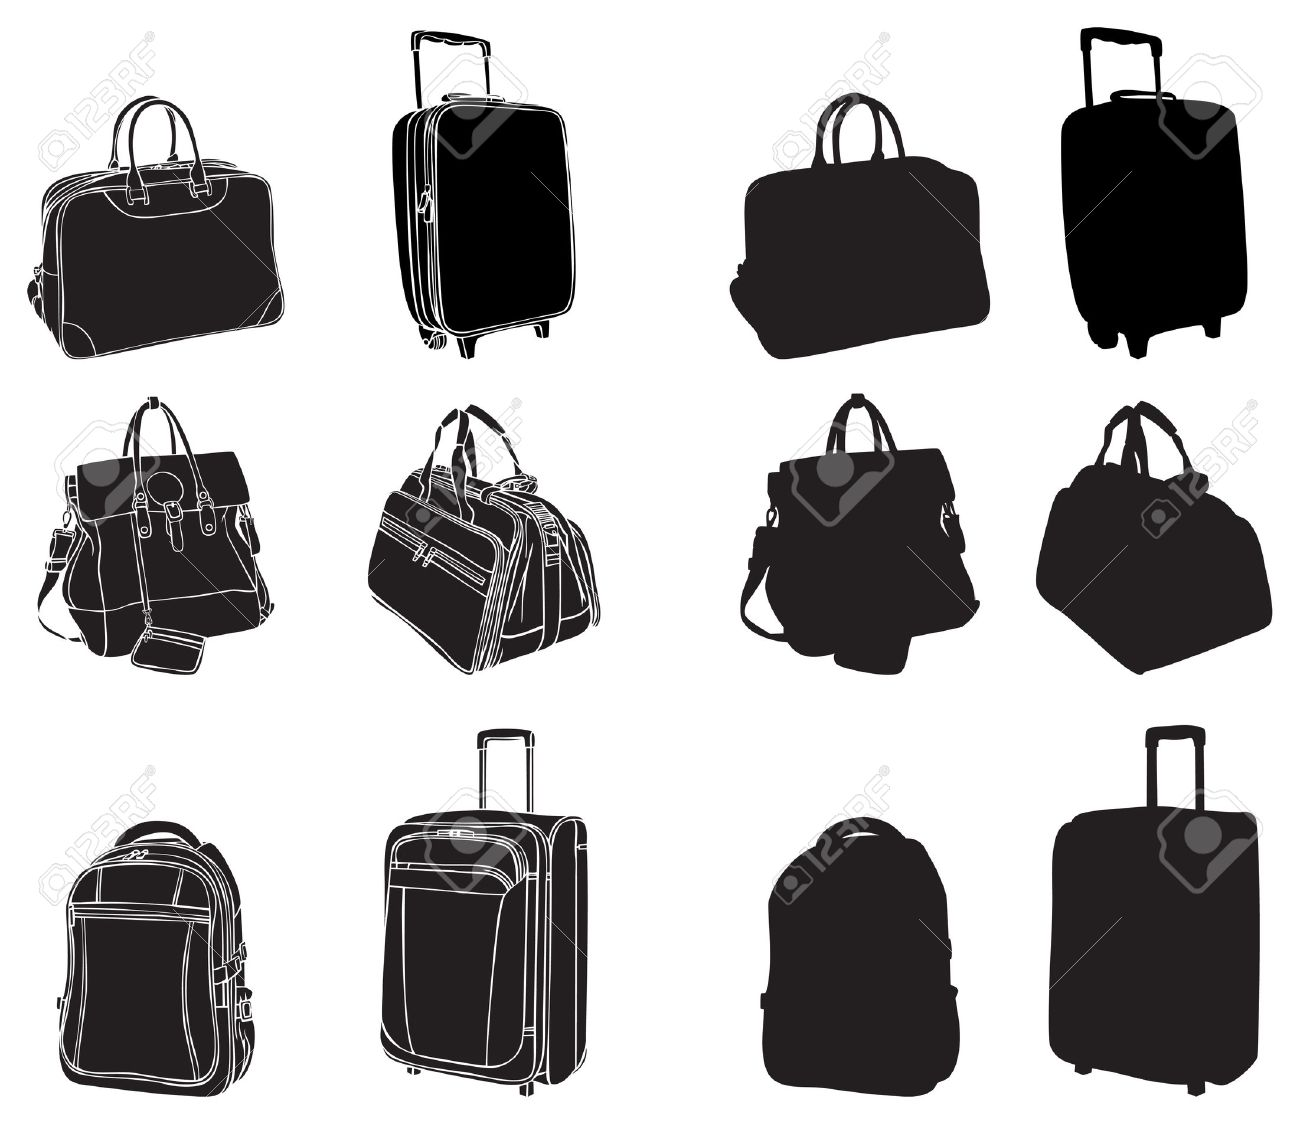 set of black silhouettes bags and suitcases - 14368698